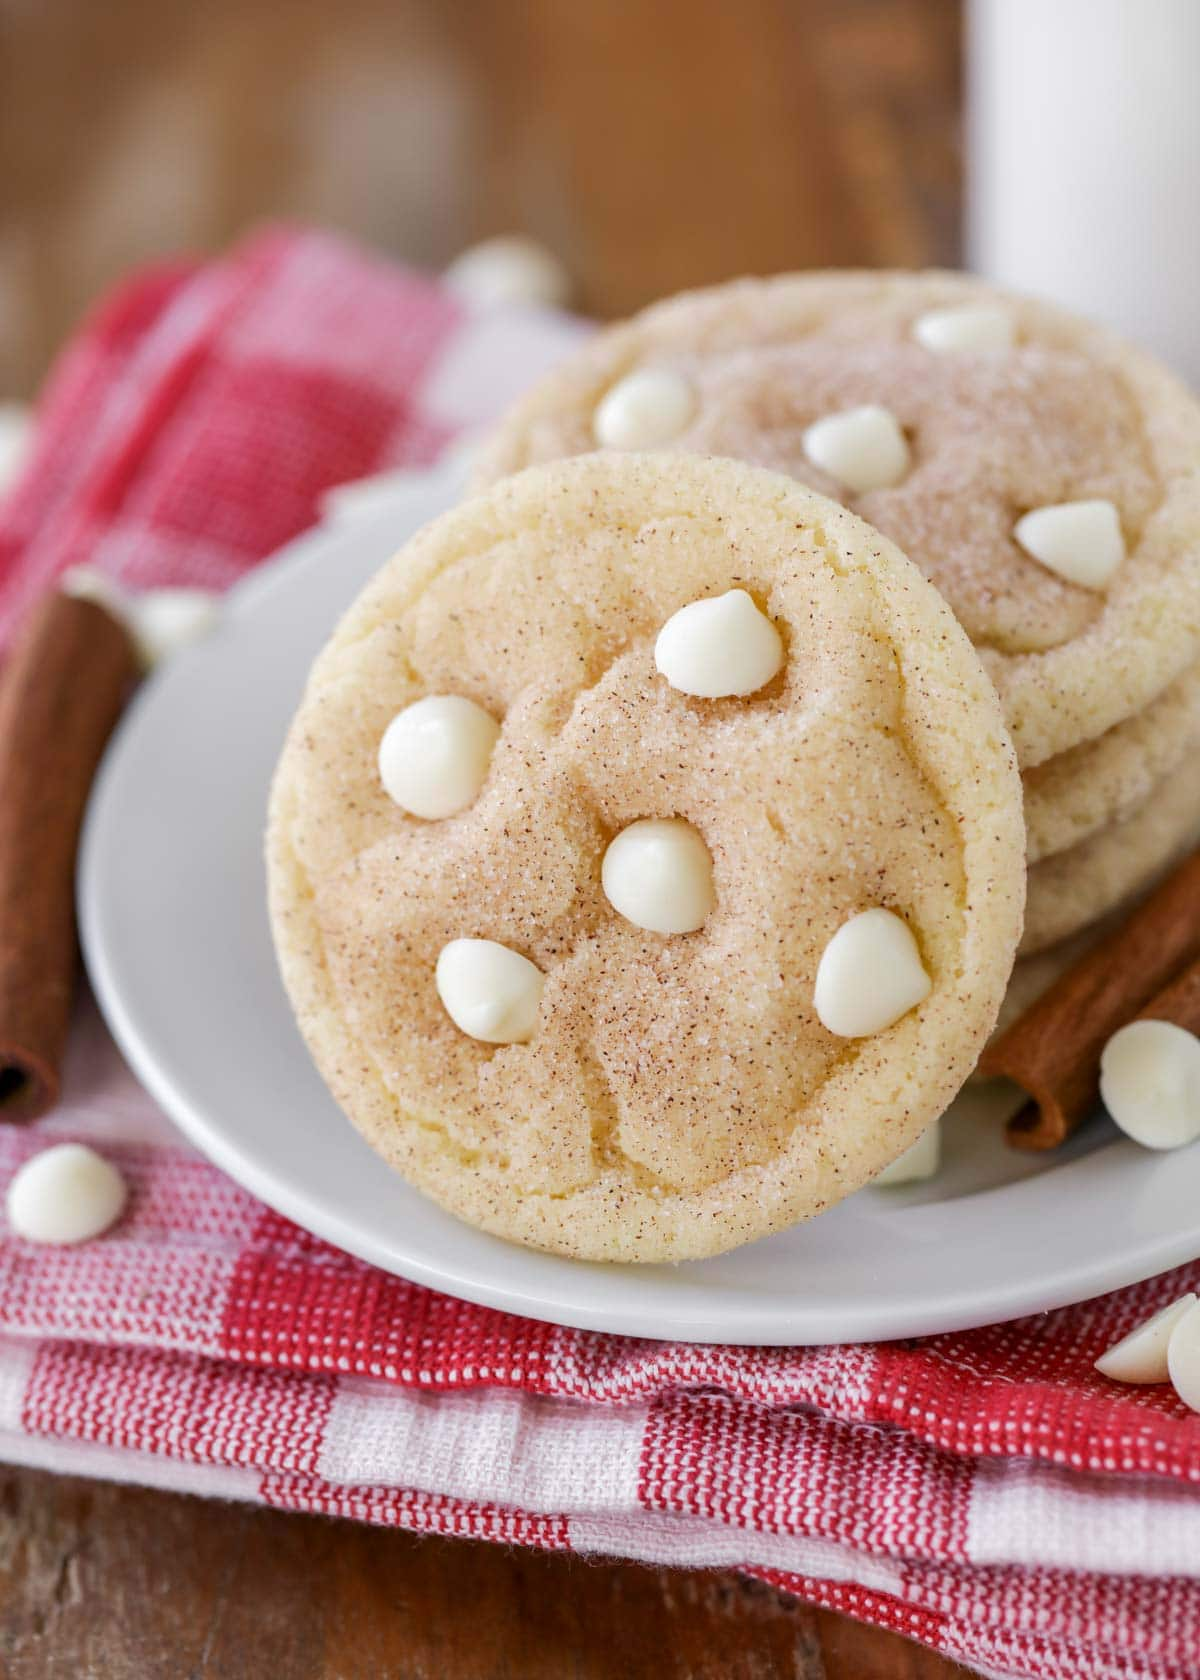 Snickerdoodle cookies with white chocolate chips